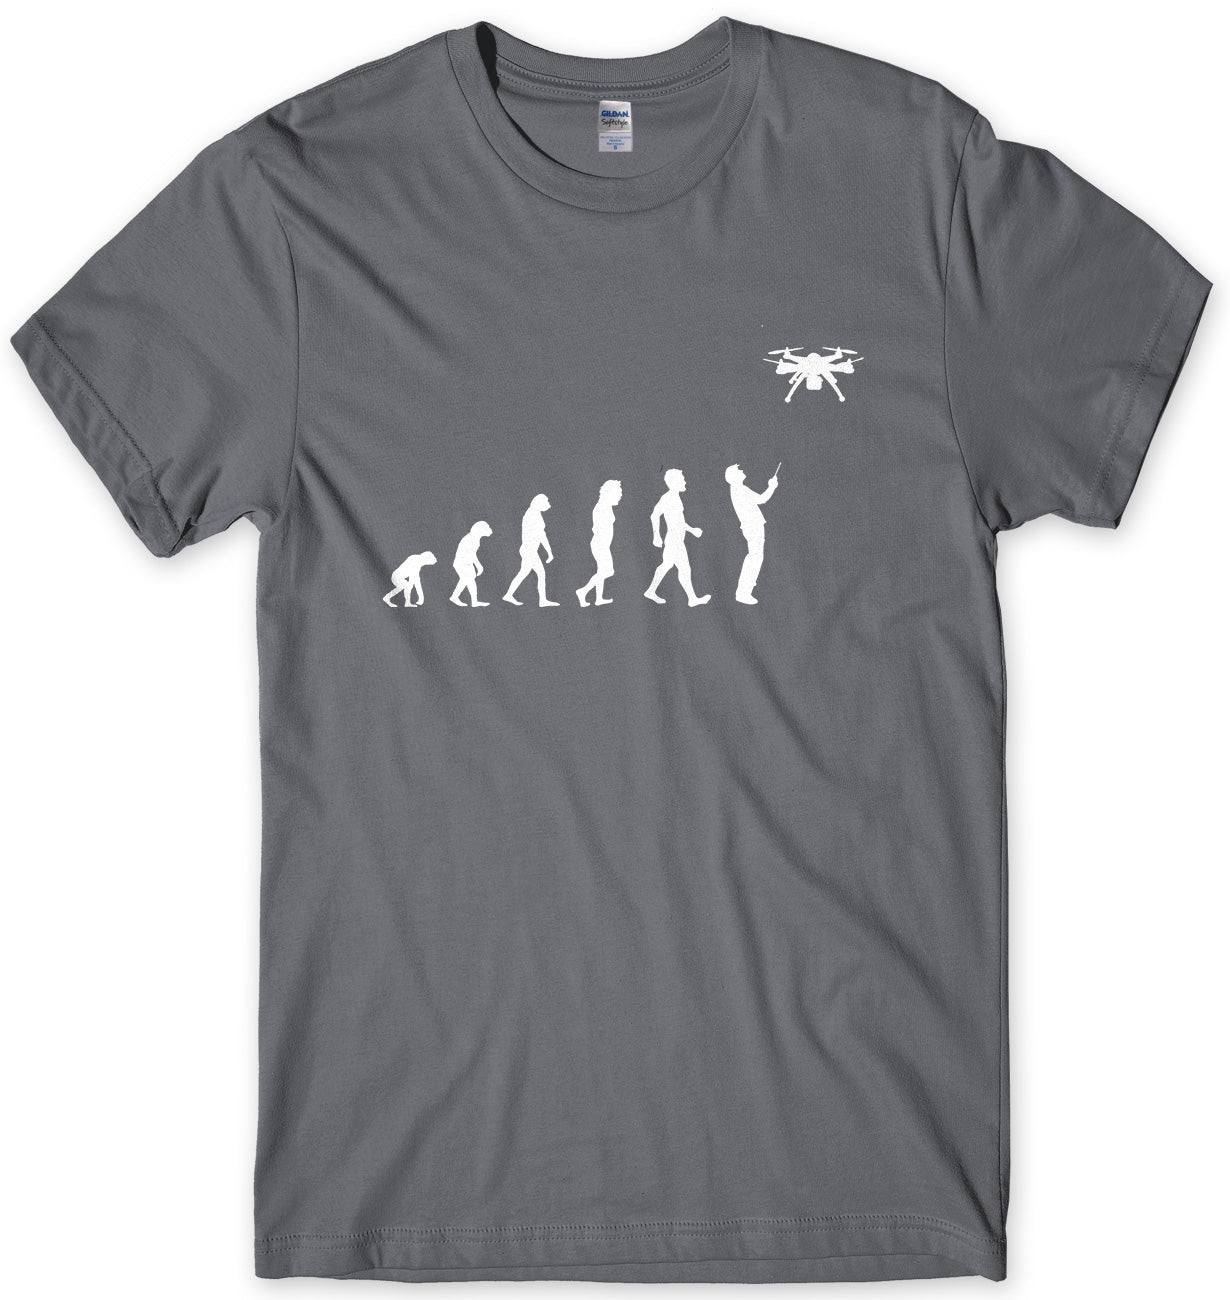 Evolution Of Drone Mens Unisex T-Shirt